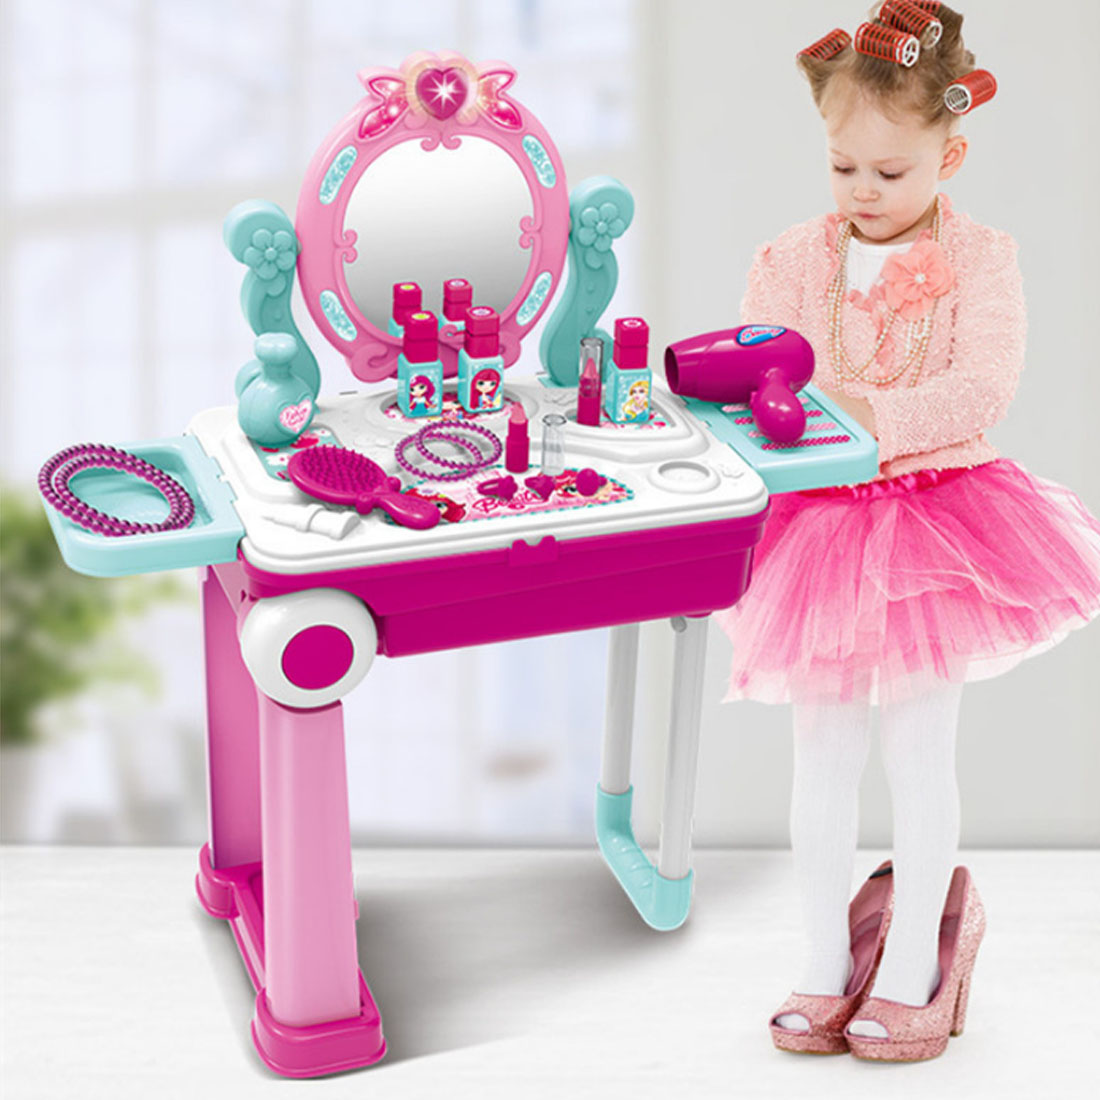 Kids Beauty Makeup Tool Sets Pretend Play Workbench Playset Educational Toy with Luggage Case Girls Toy